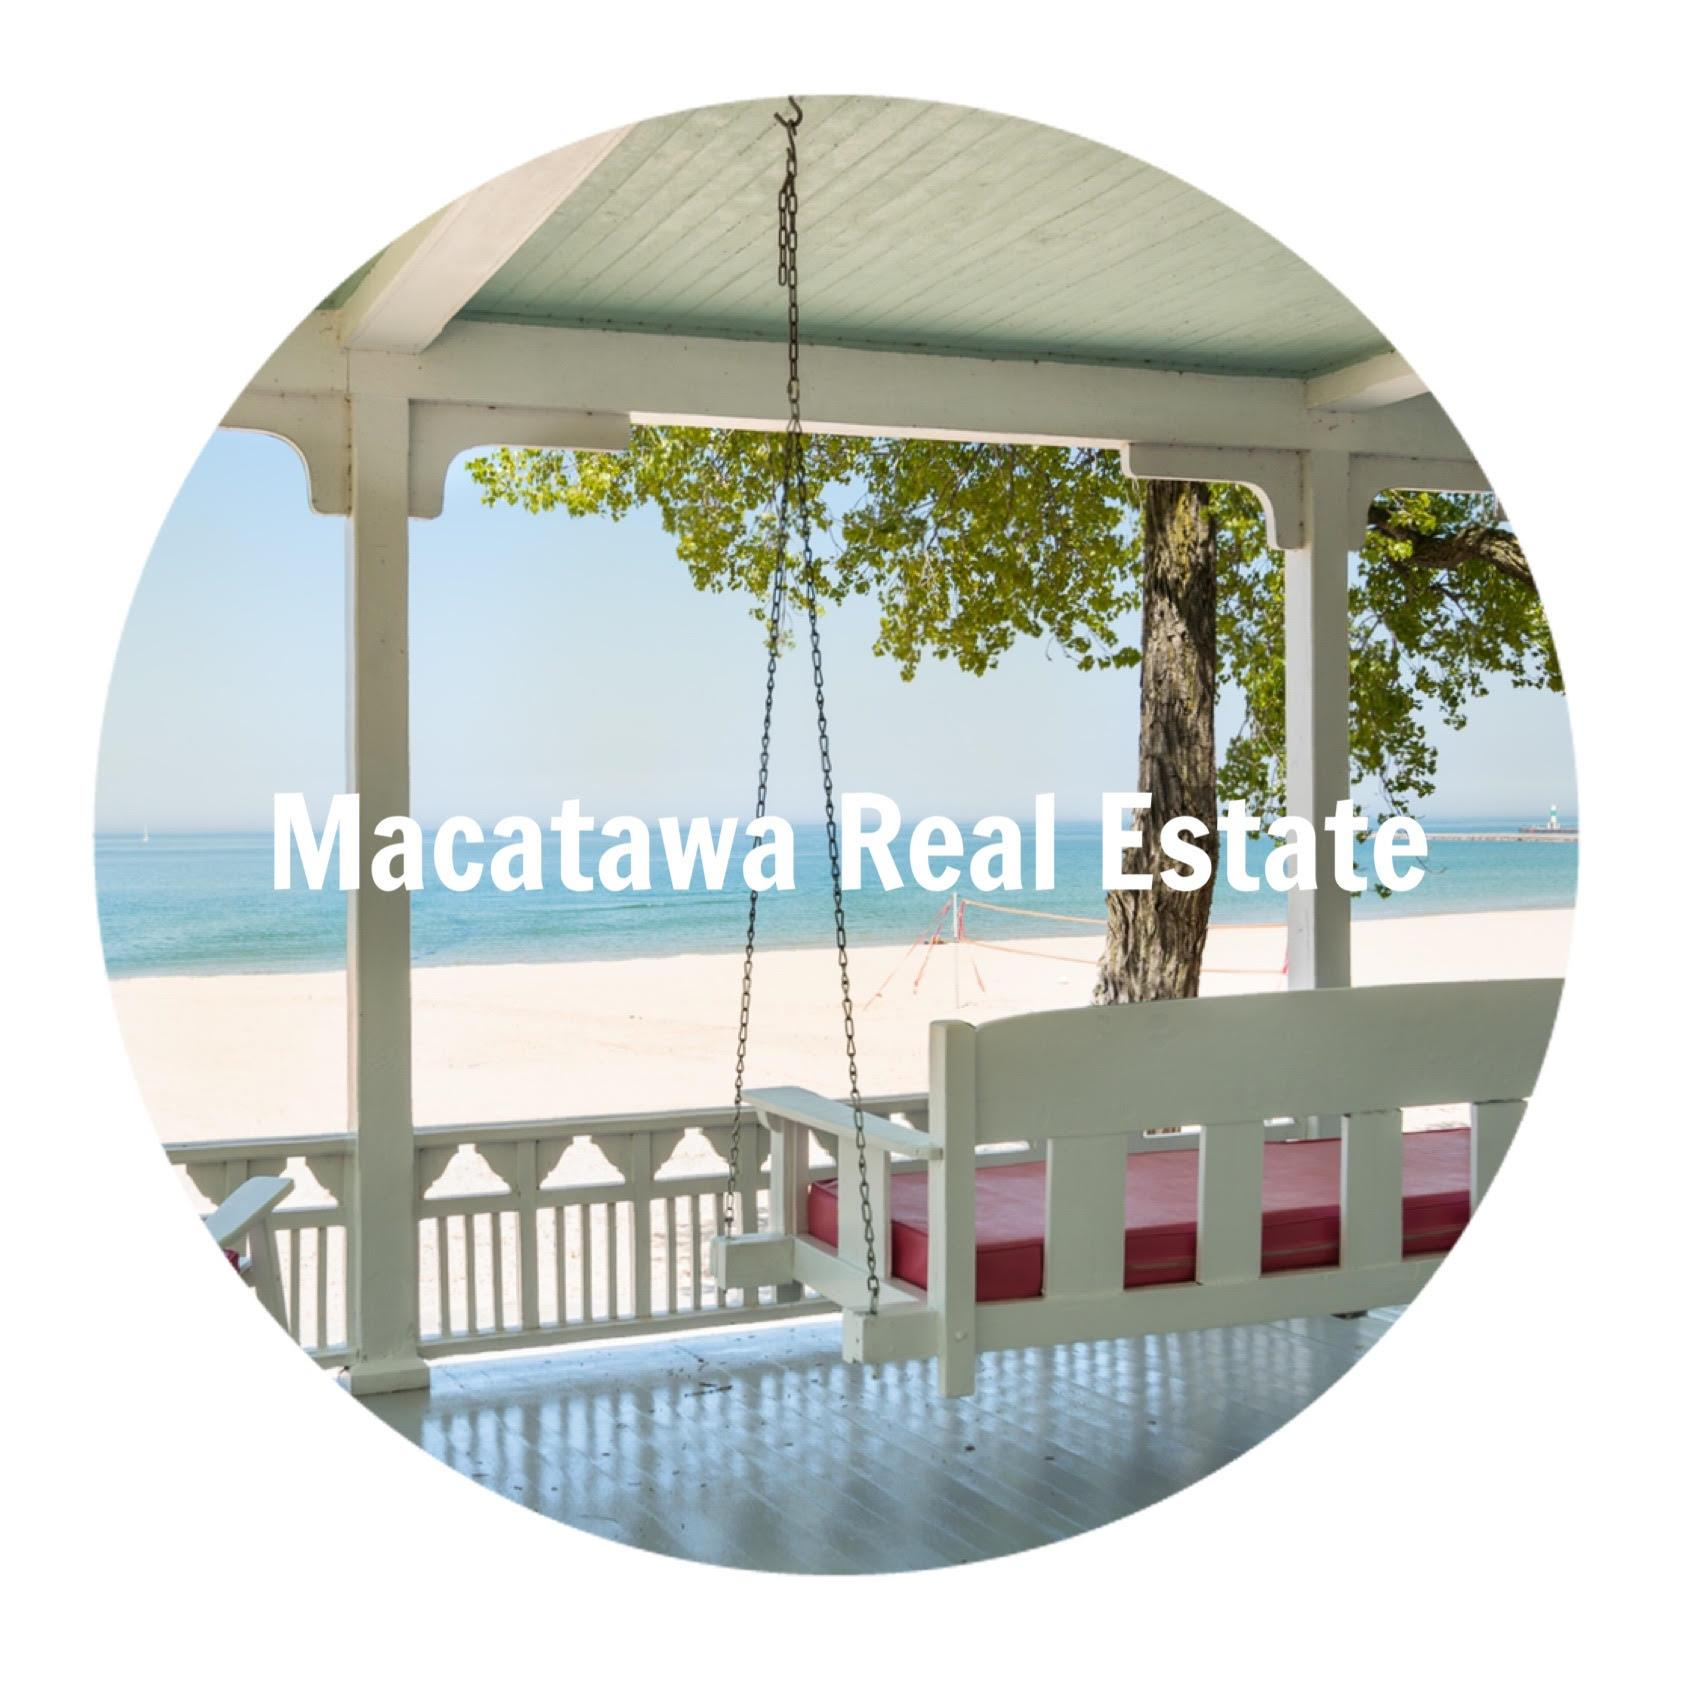 Macatawa Real Estate